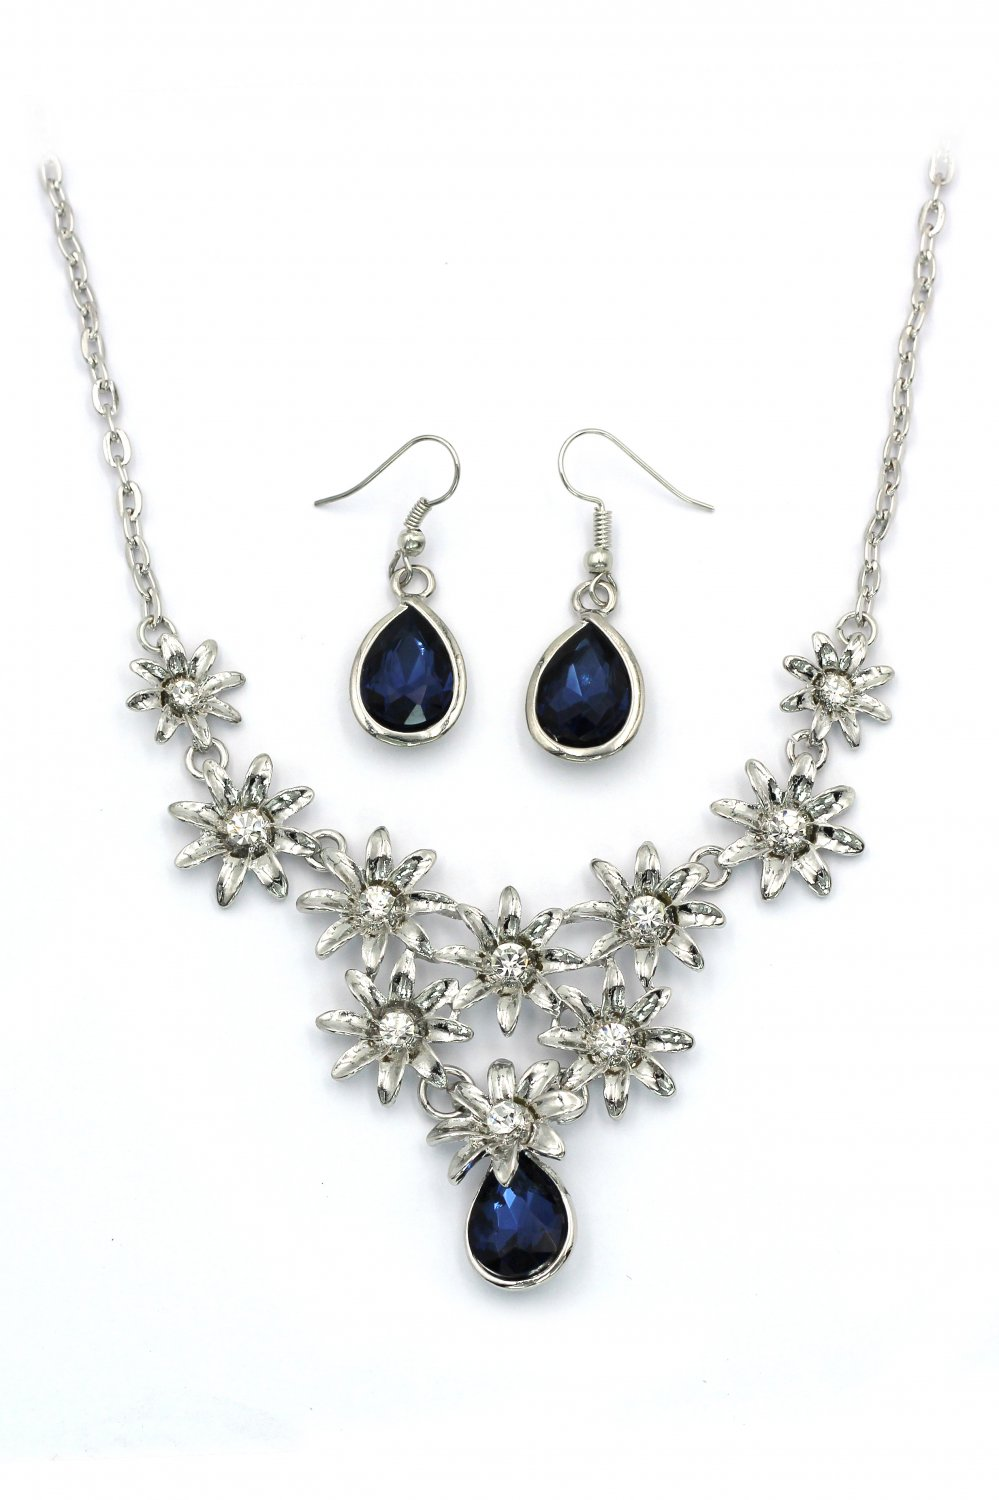 Brilliant silver flowers blue crystal necklace earrings set